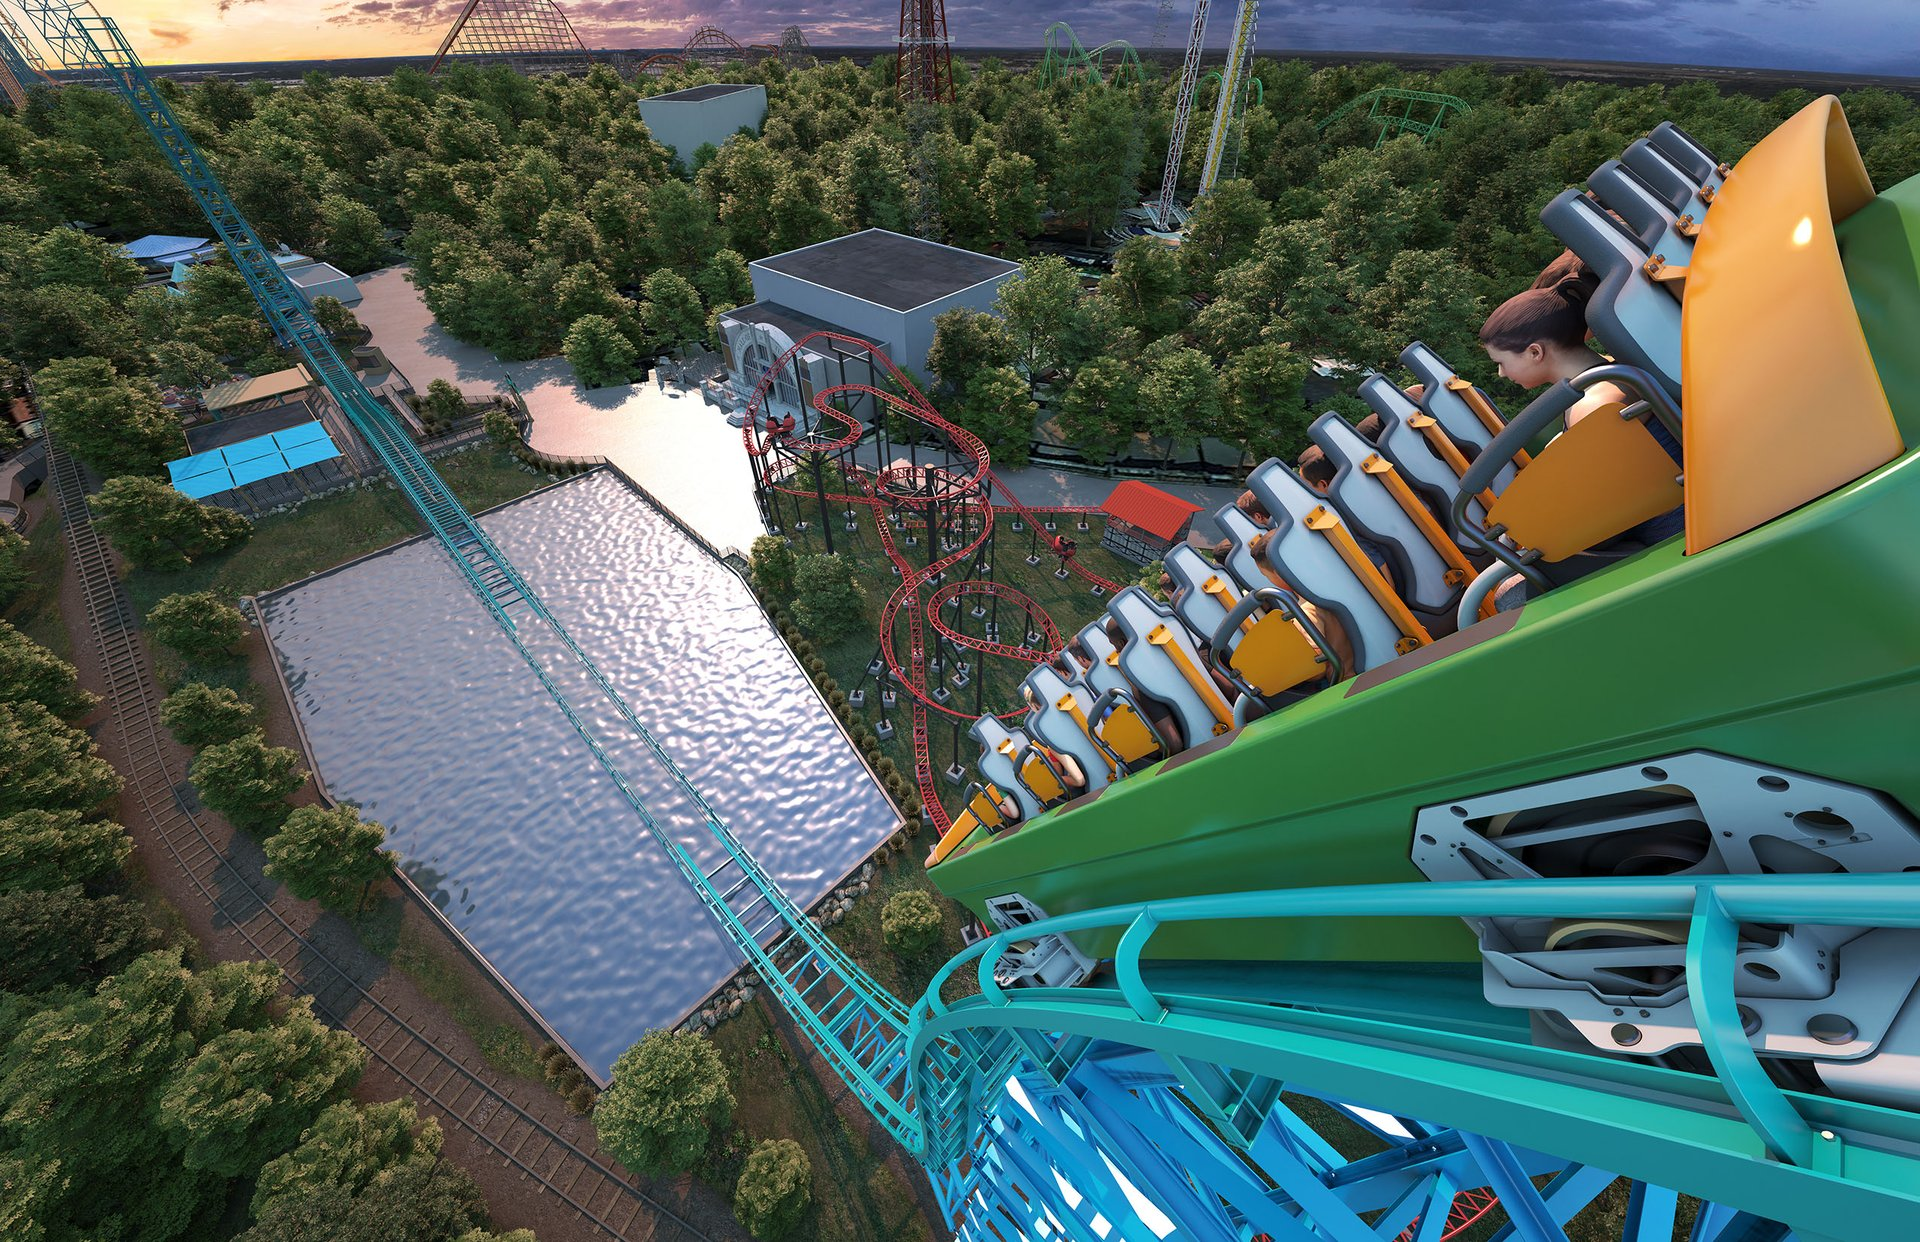 Guests will experience 90-degree drops during the ride cycle.